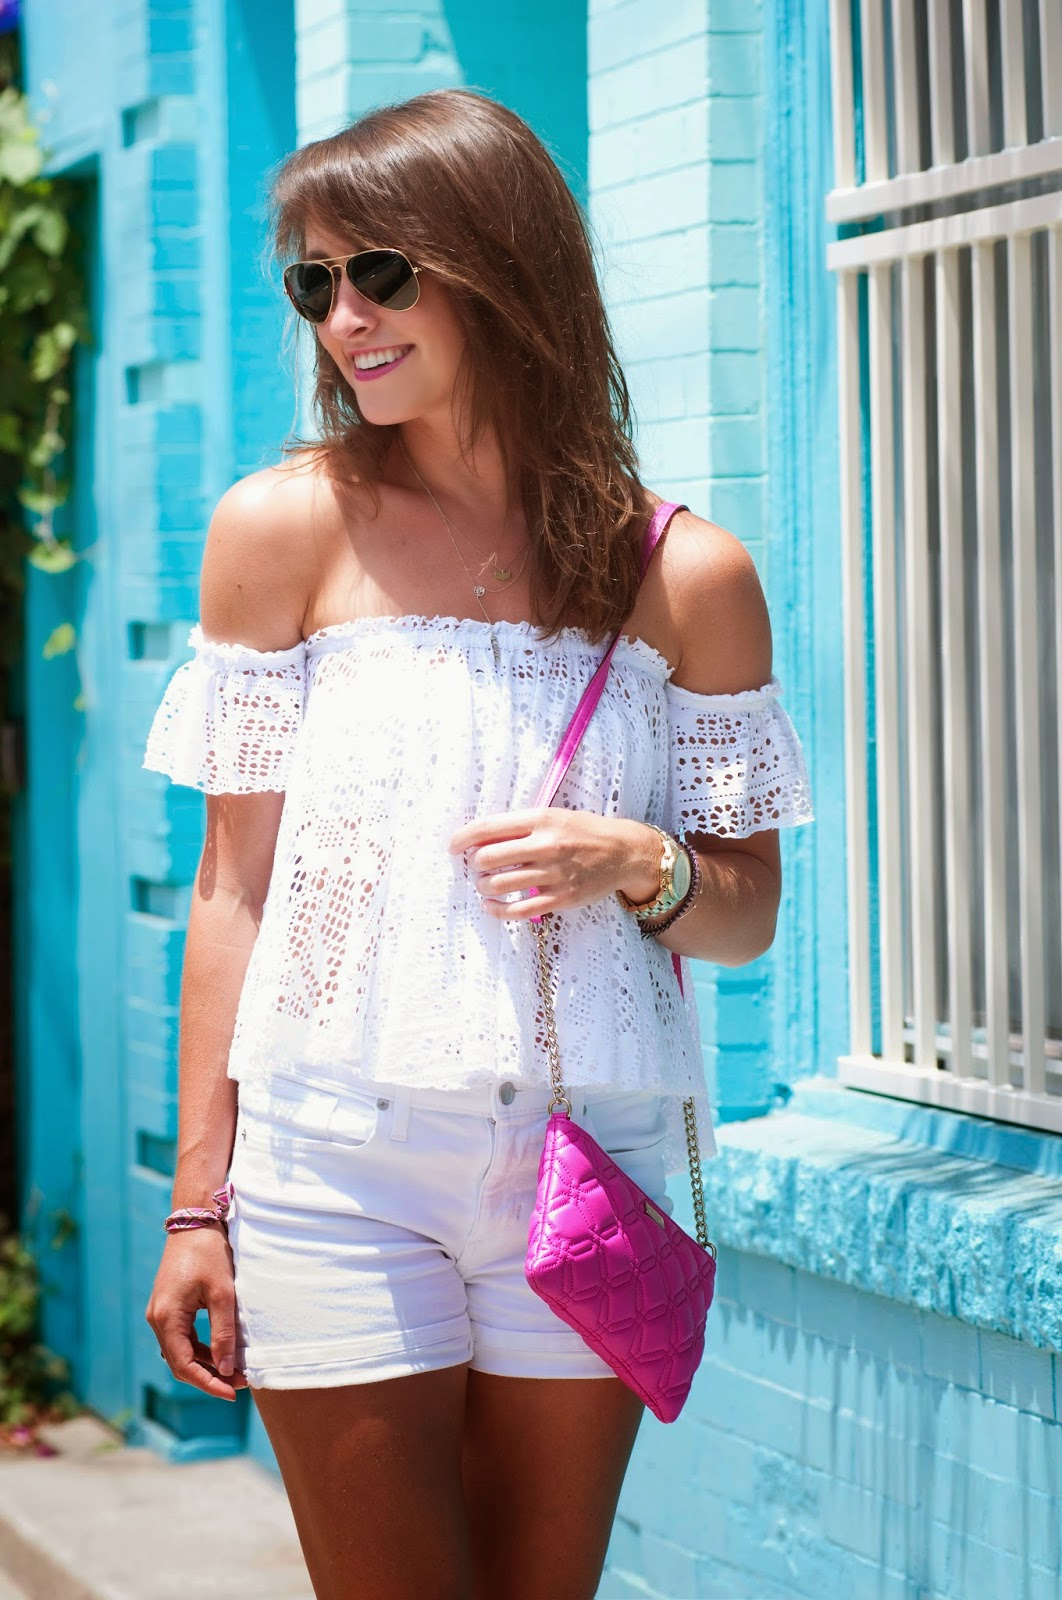 bite-lipstick-freepeople-white-top-shorts